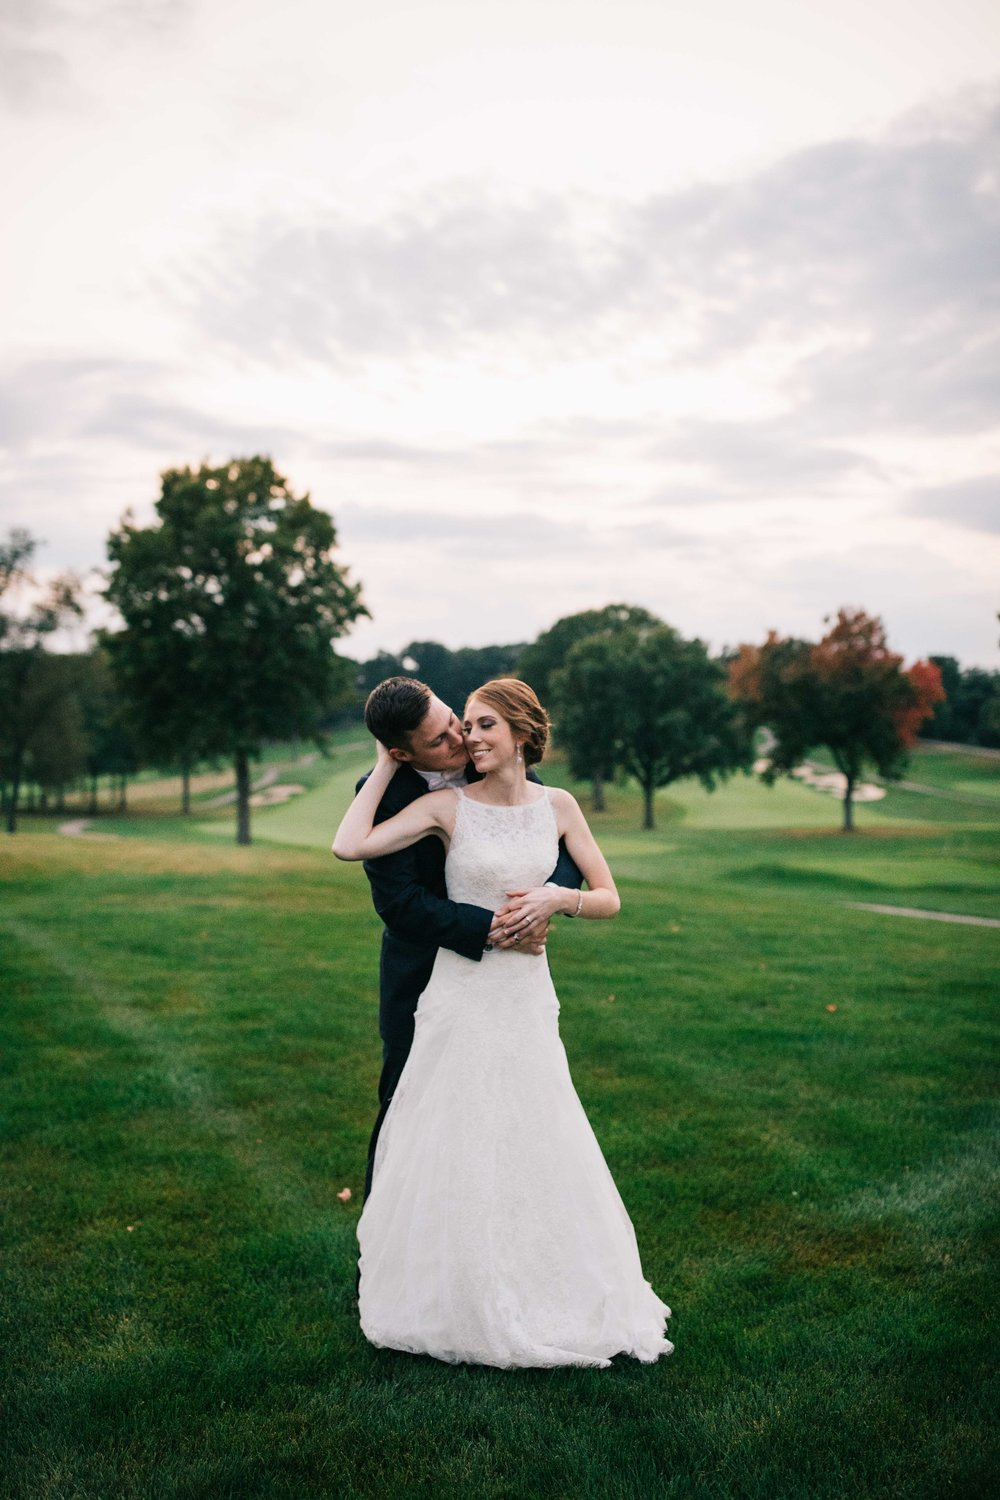 Sewickley Heights Golf Club Wedding - Ahsley & Ethan-456.jpg